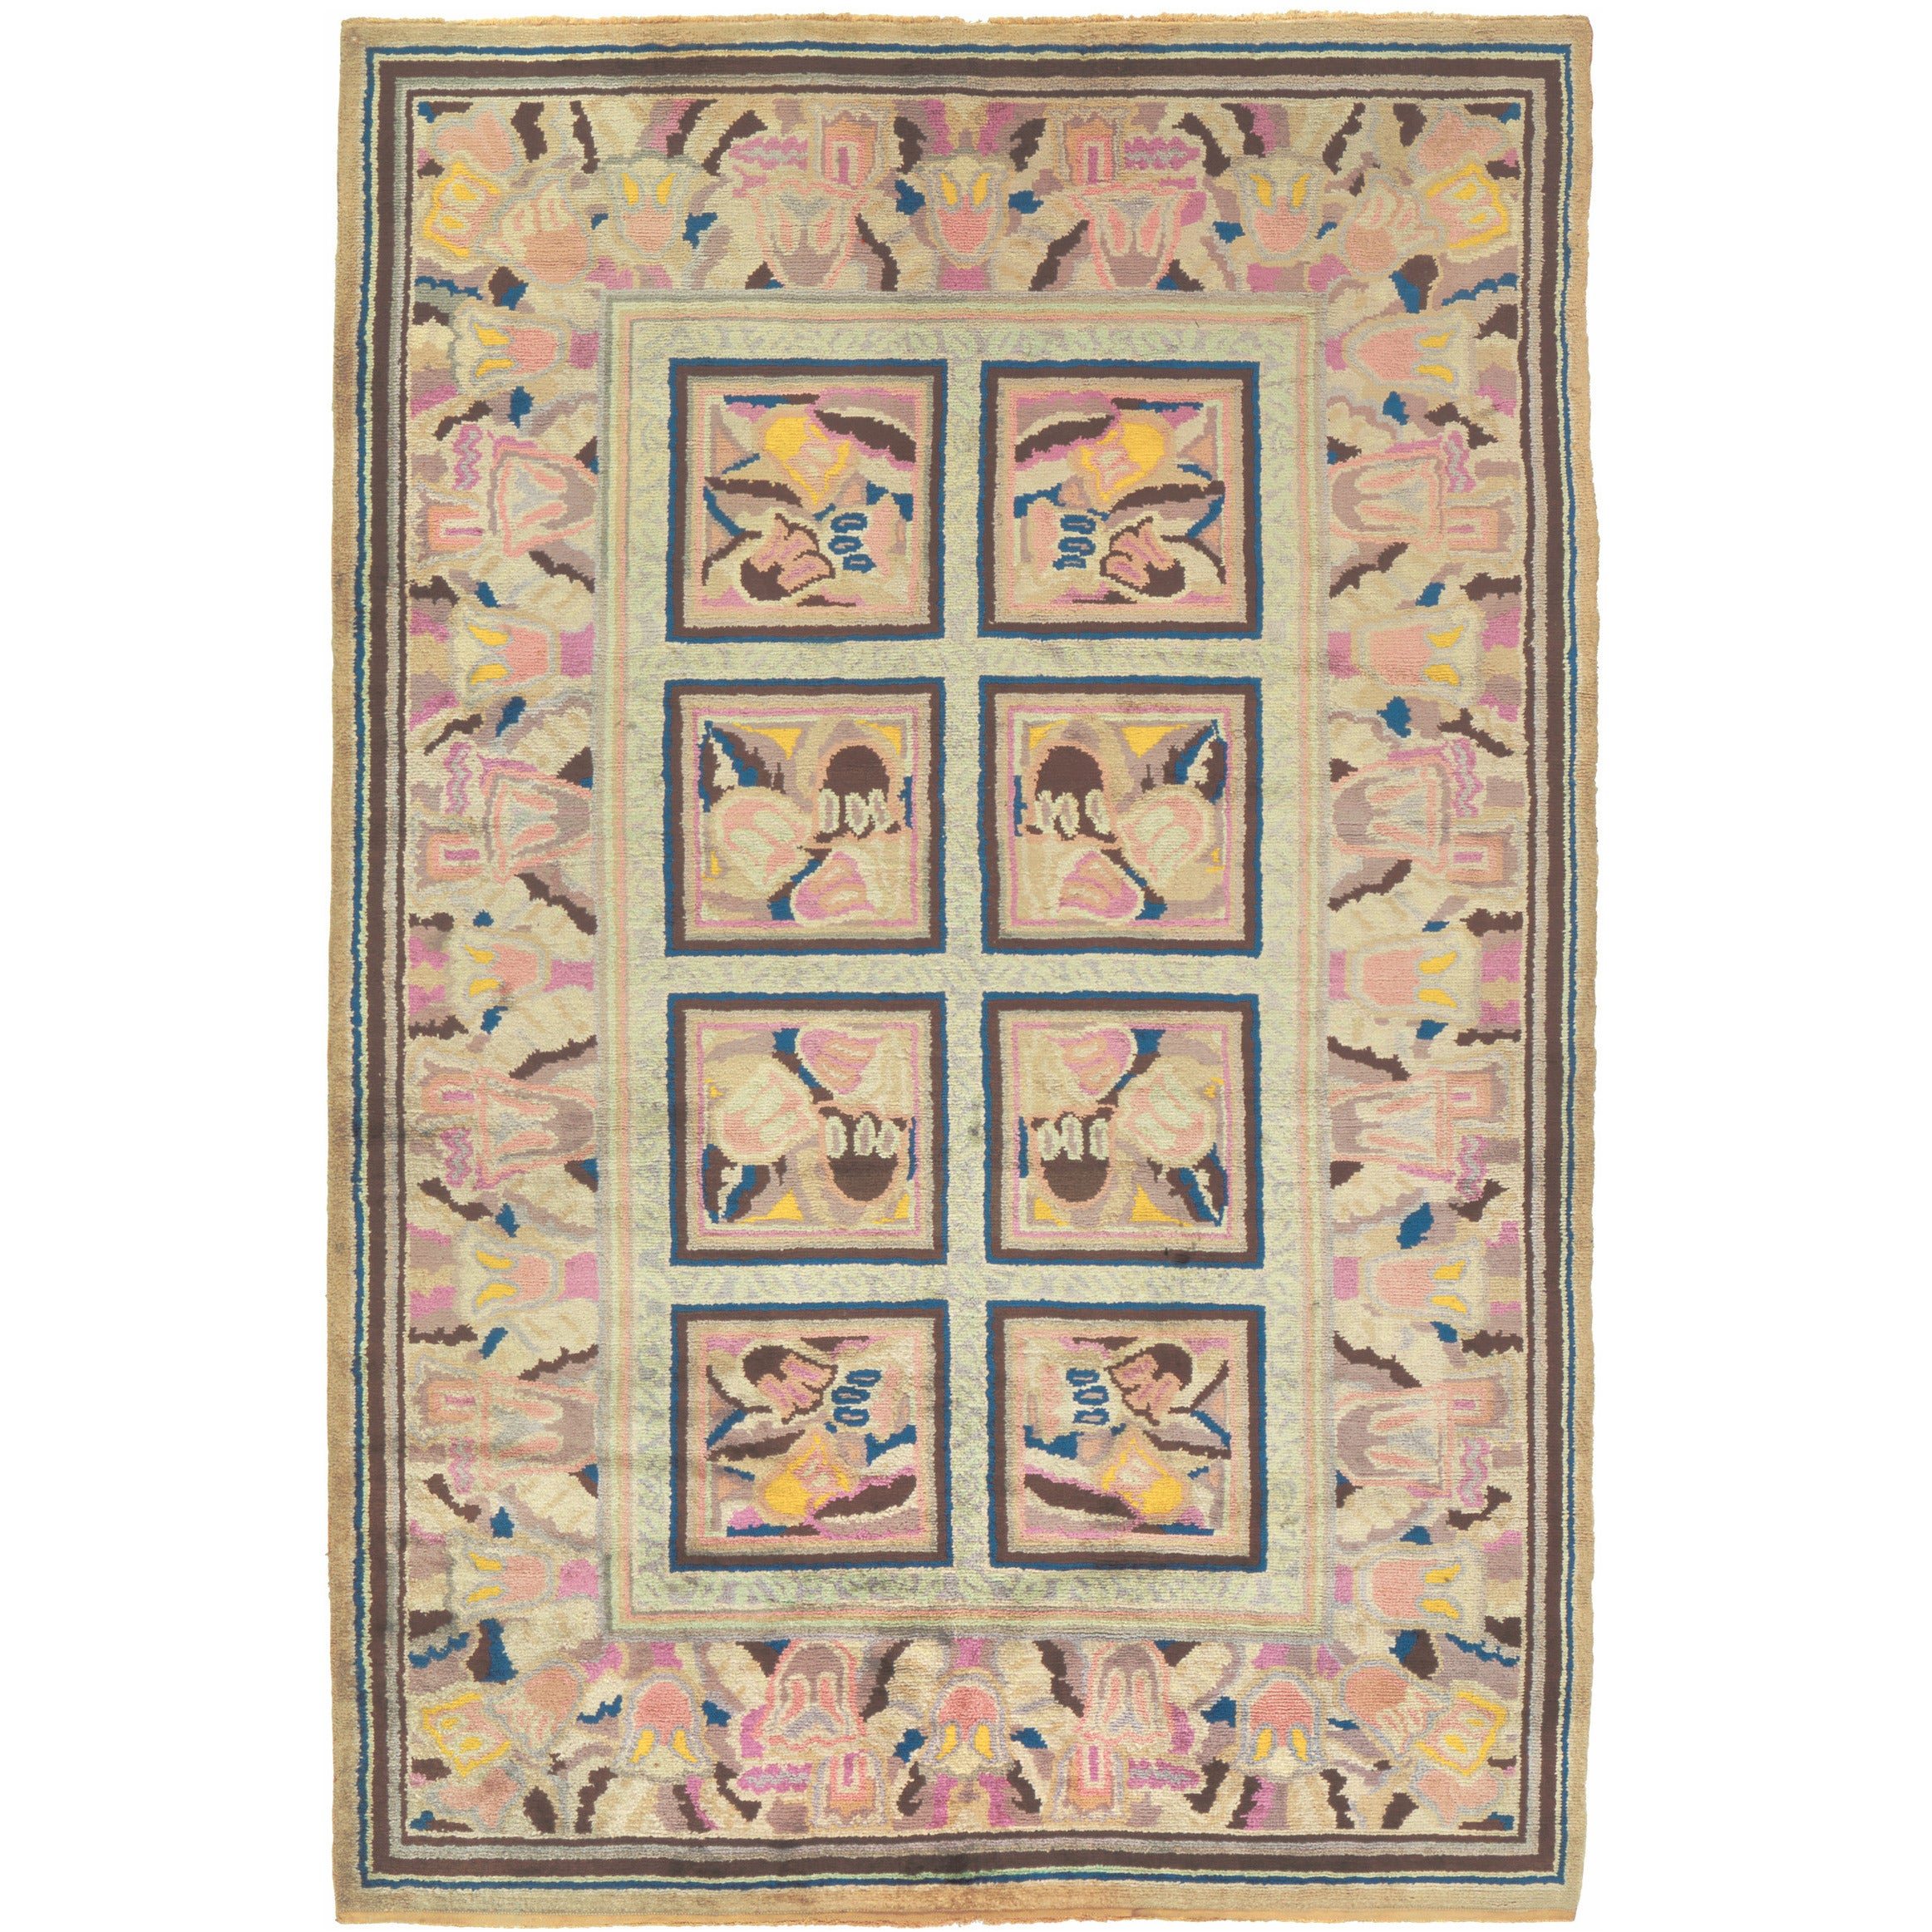 Early 20th Century French Art Deco Carpet